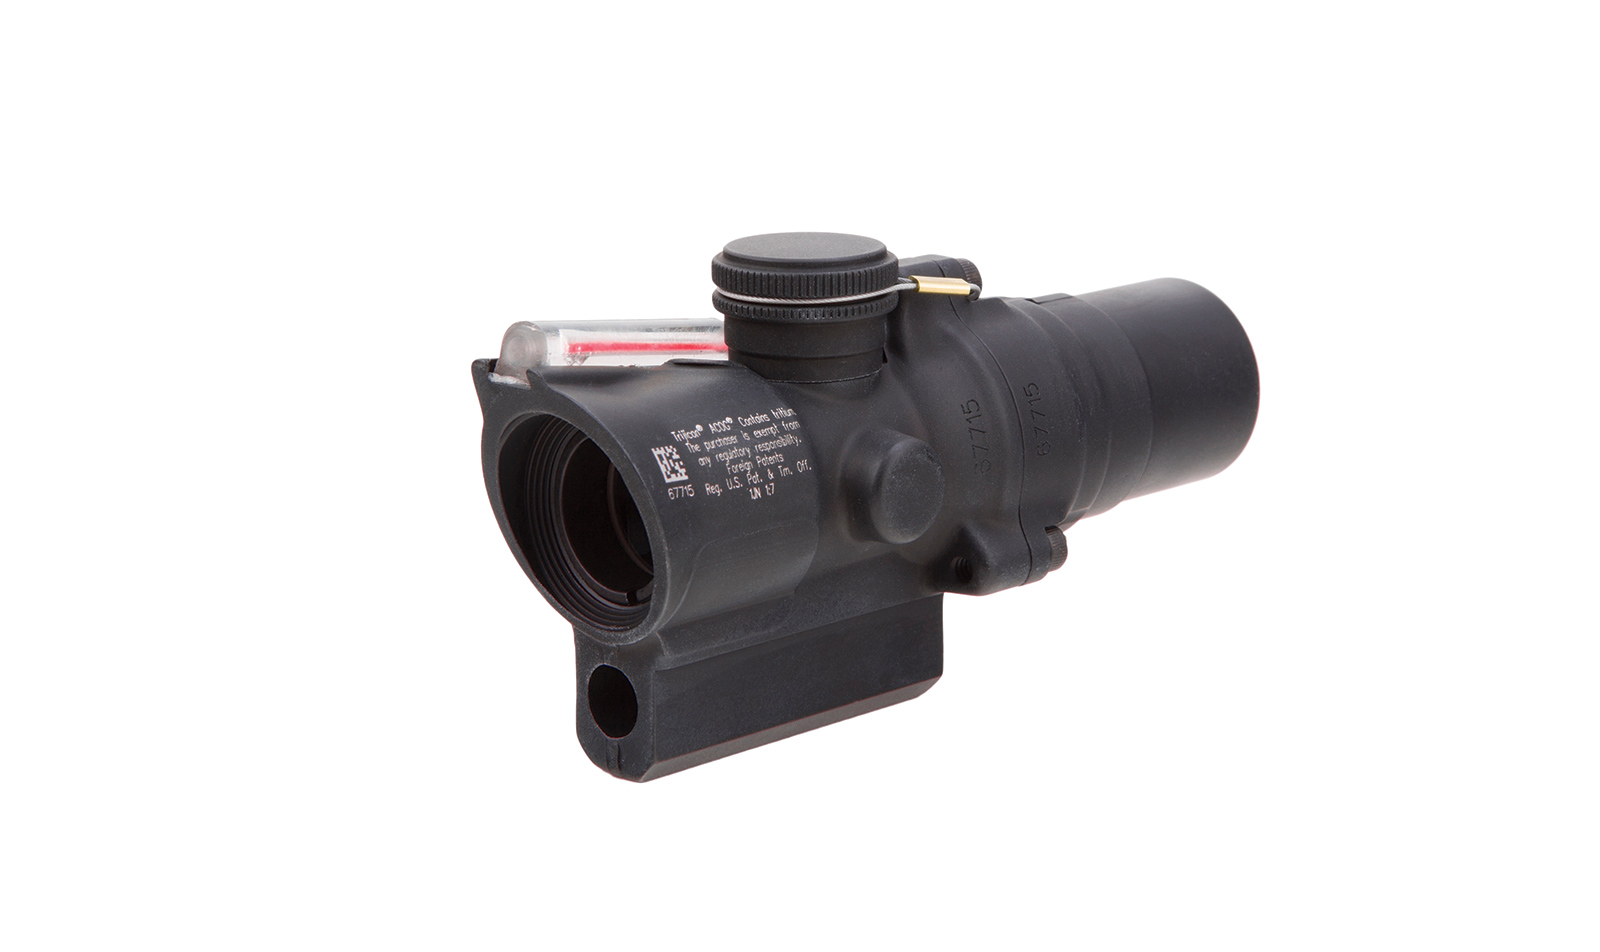 Trijicon ACOG® 1.5x16S Riflescope